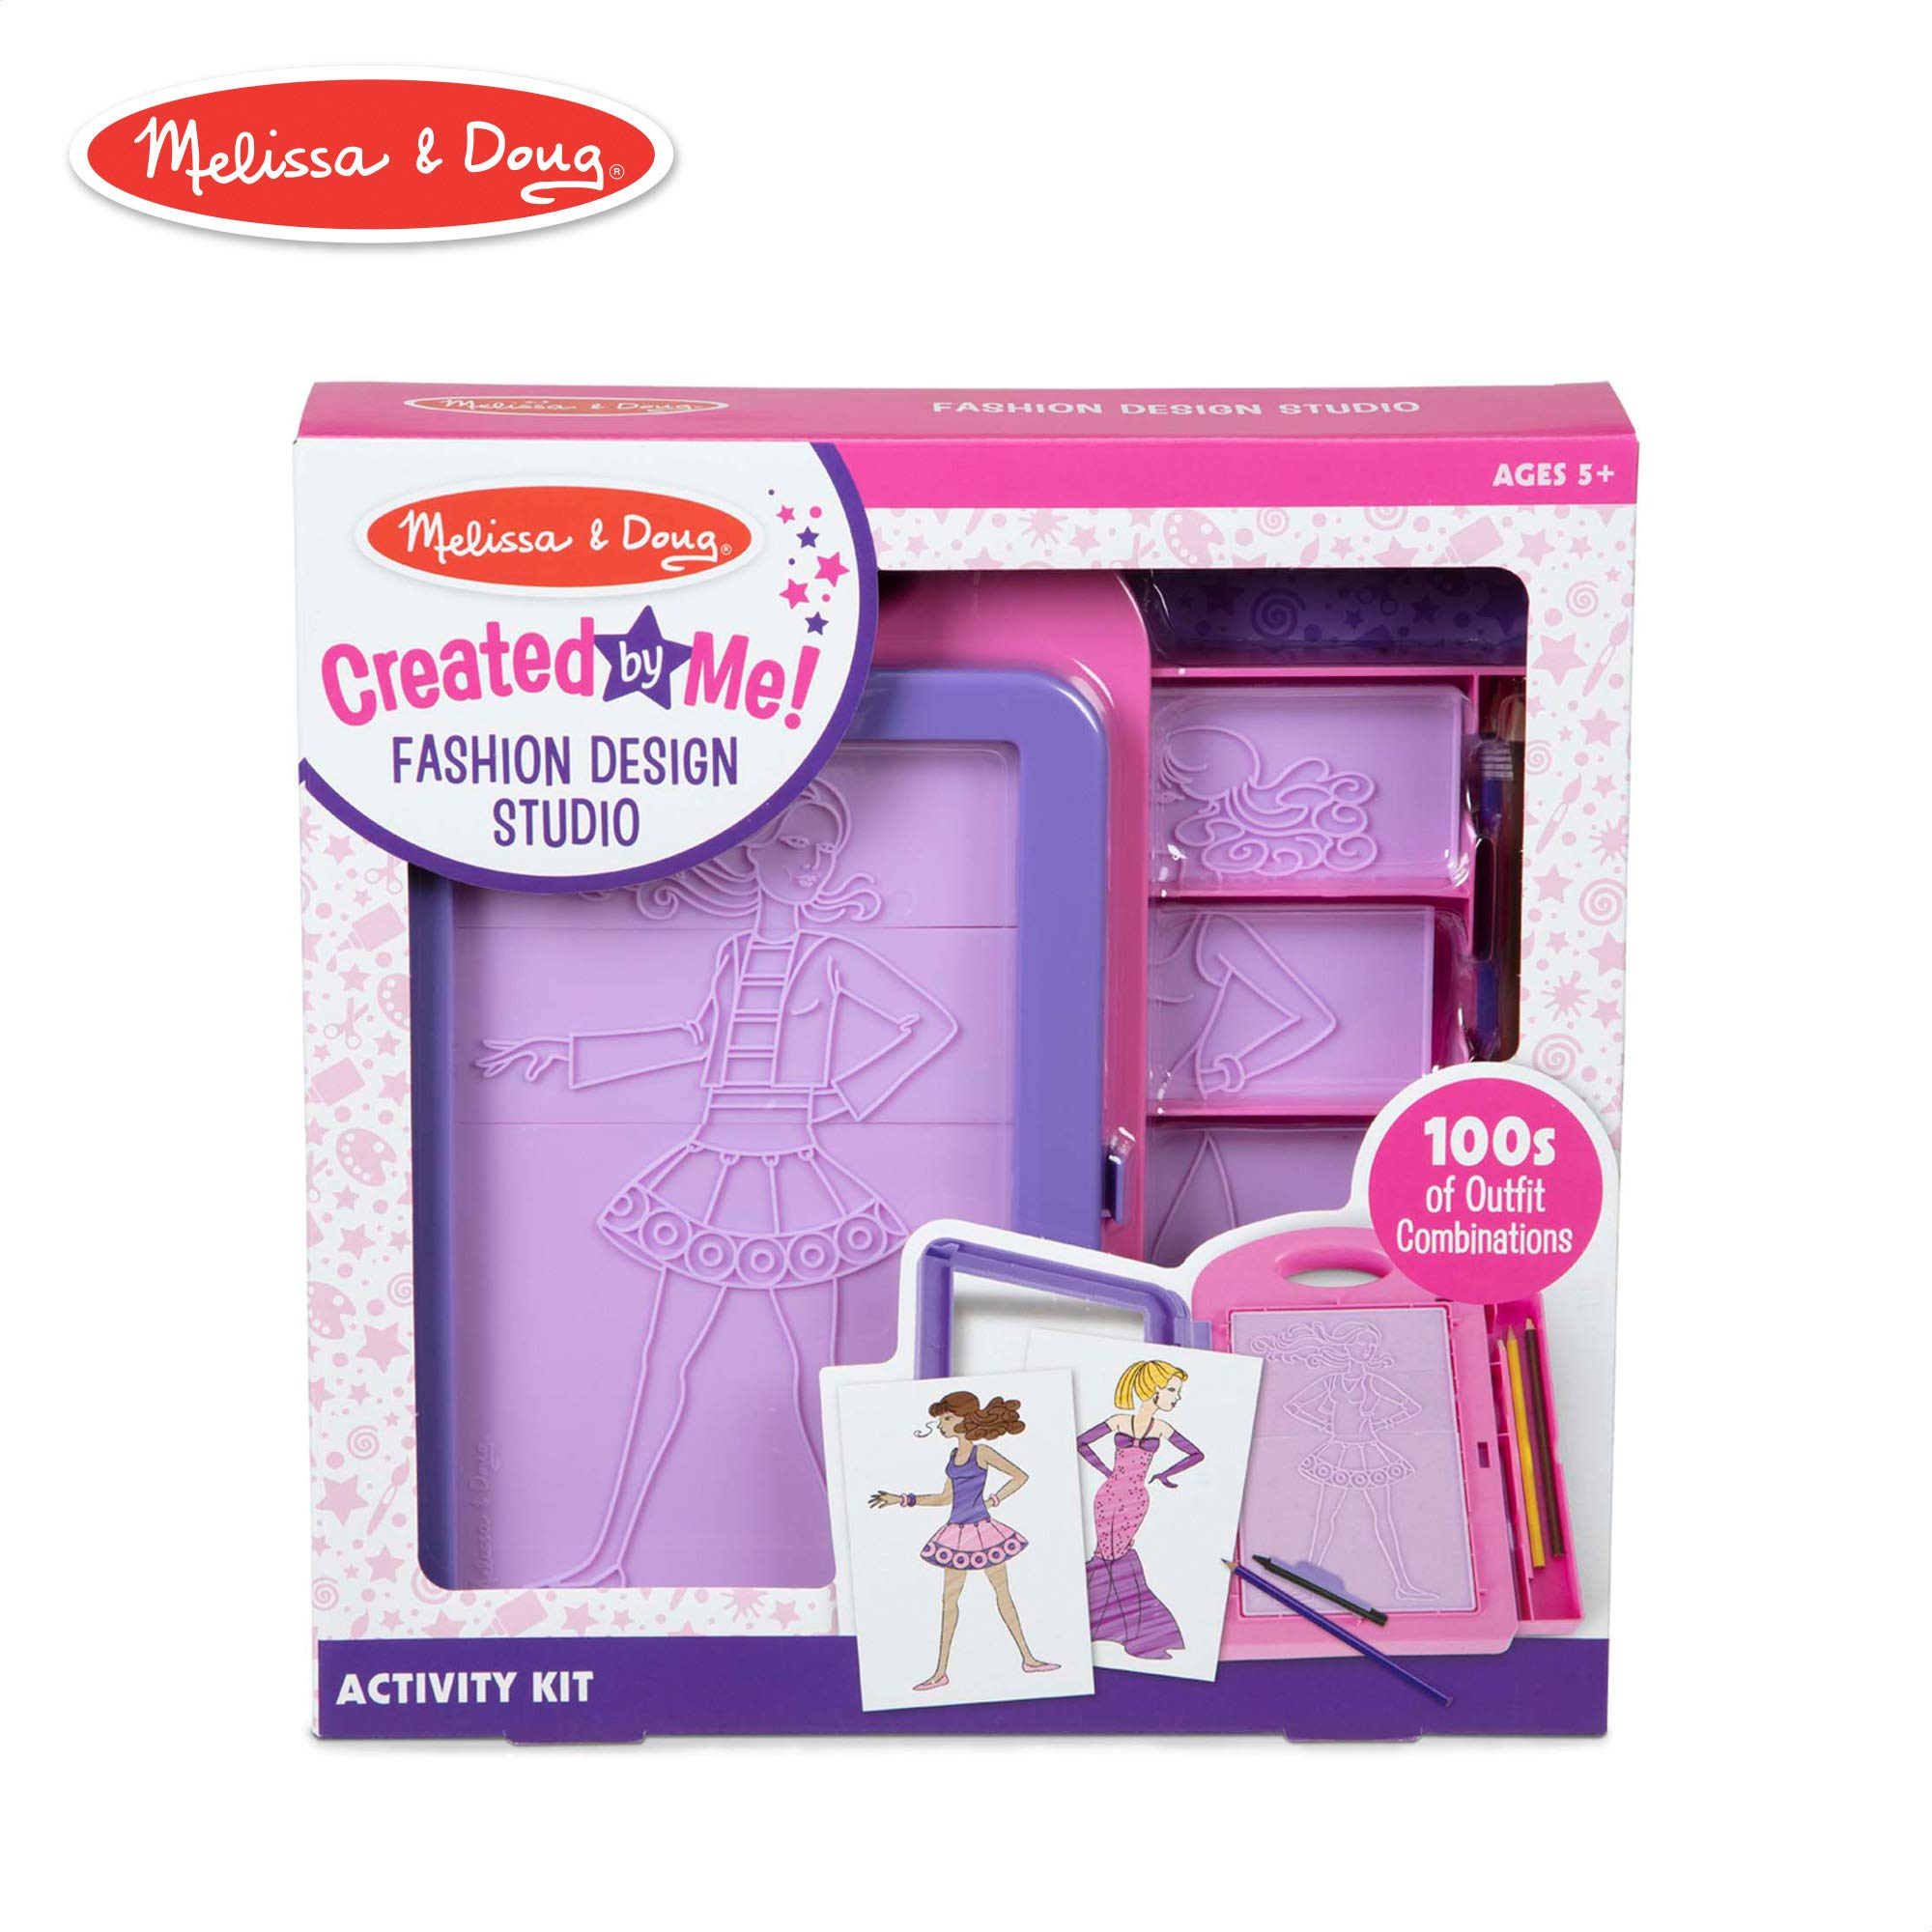 Melissa & Doug Created by Me! Fashion Design Studio Rubbing Plate Activity Kit (Arts & Crafts, 9 Double-Sided Rubbing Plates, 4 Pencils, Crayon, 16 Piece) by Melissa & Doug